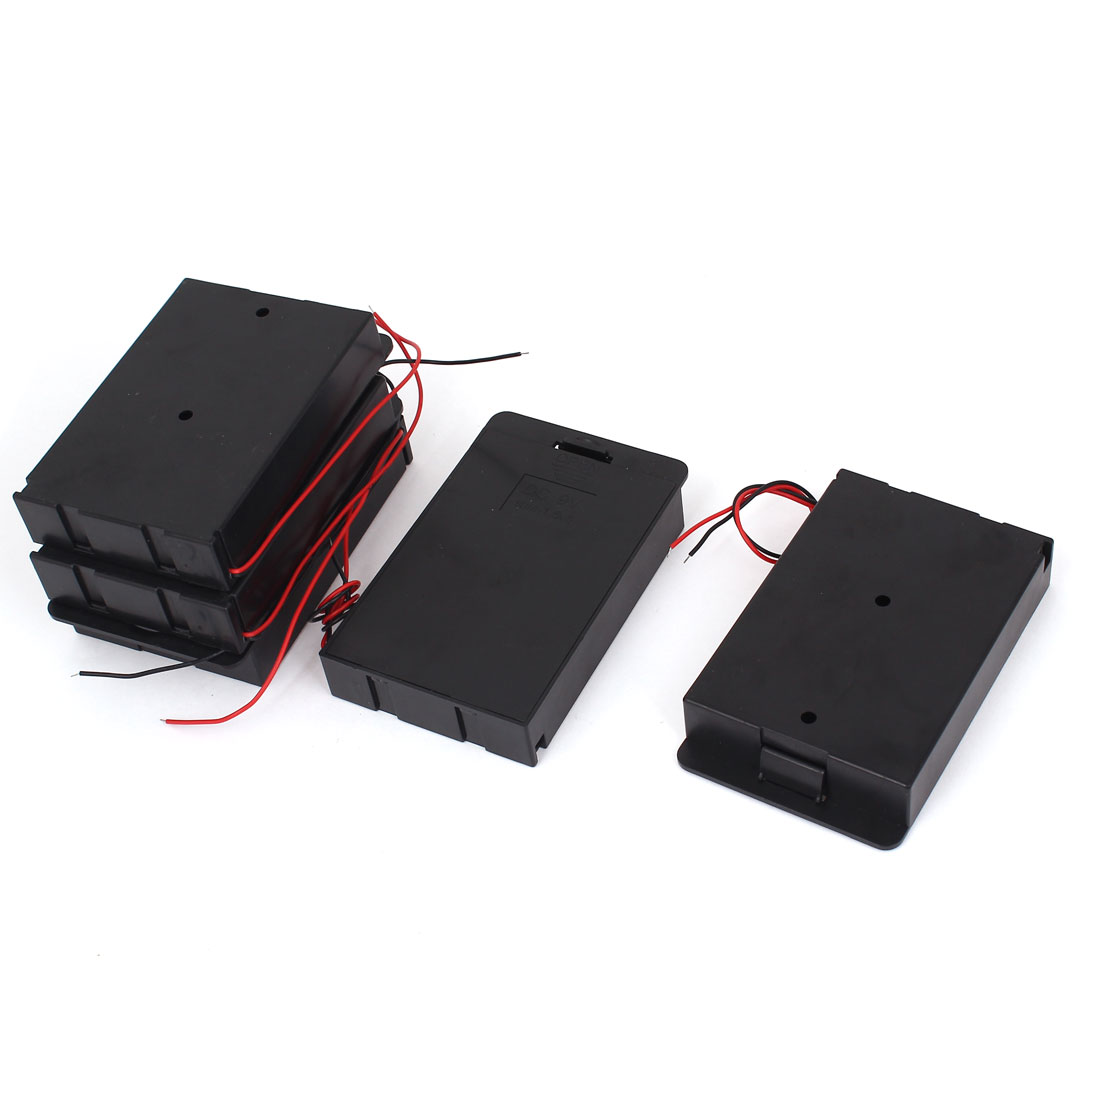 5pcs Plastic Shell 2-Wired 6 x 1.5V AA Battery Case Storage Boxes Holder Black